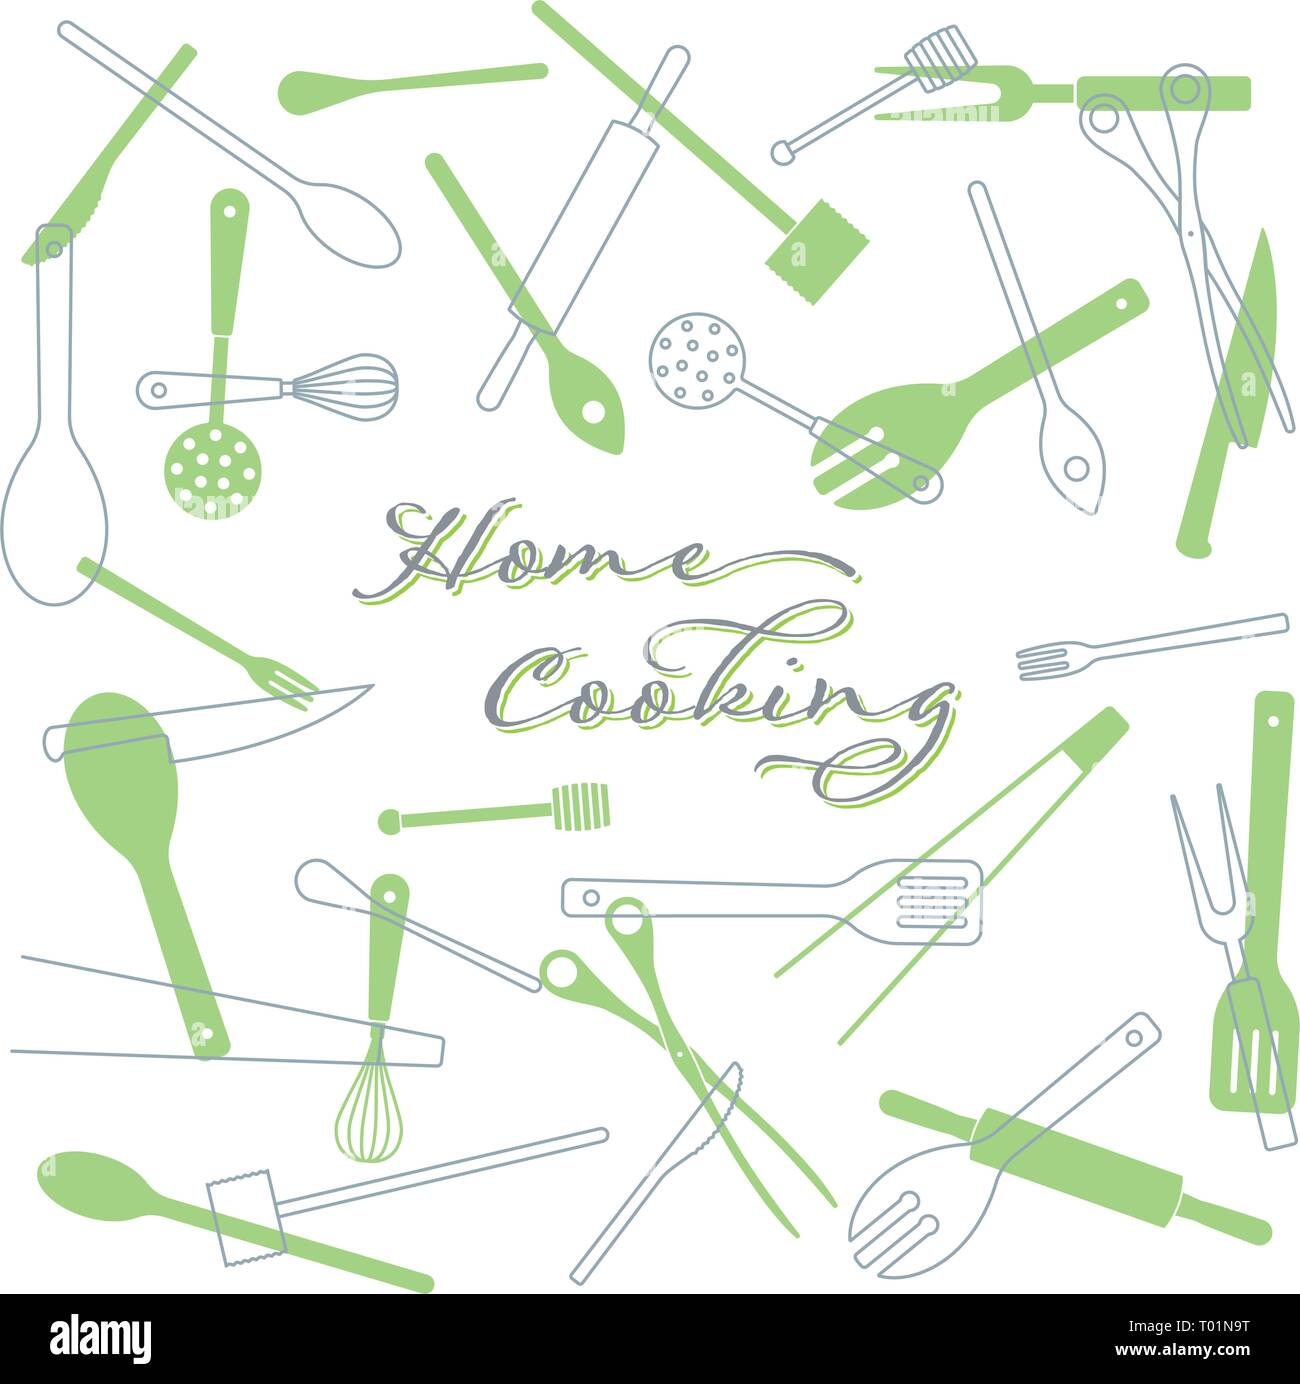 Home Cooking concept background. Kitchen utensils vector illustration. text on separate layer. - Stock Vector